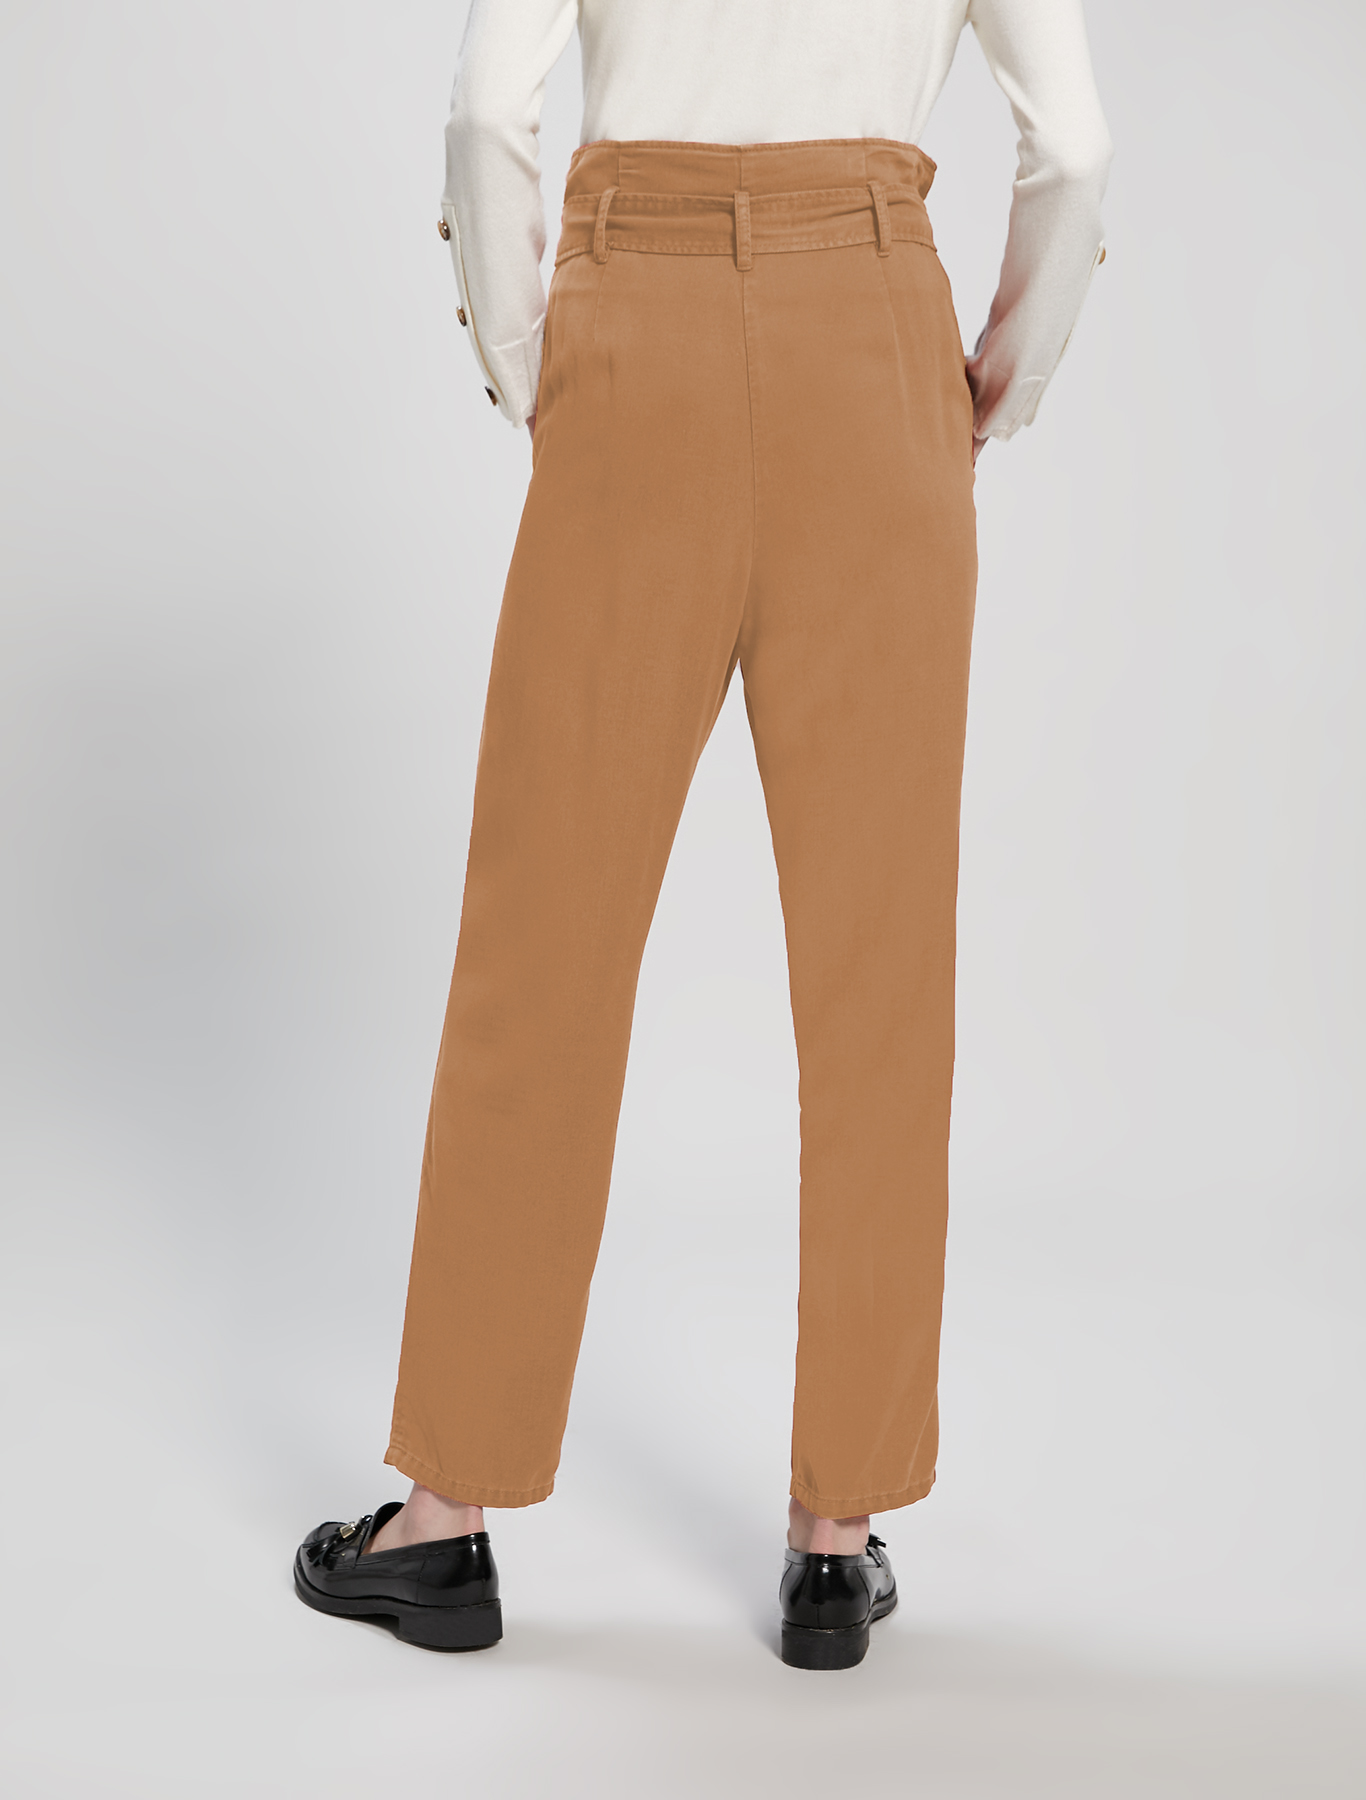 Carrot-fit trousers - beige - pennyblack